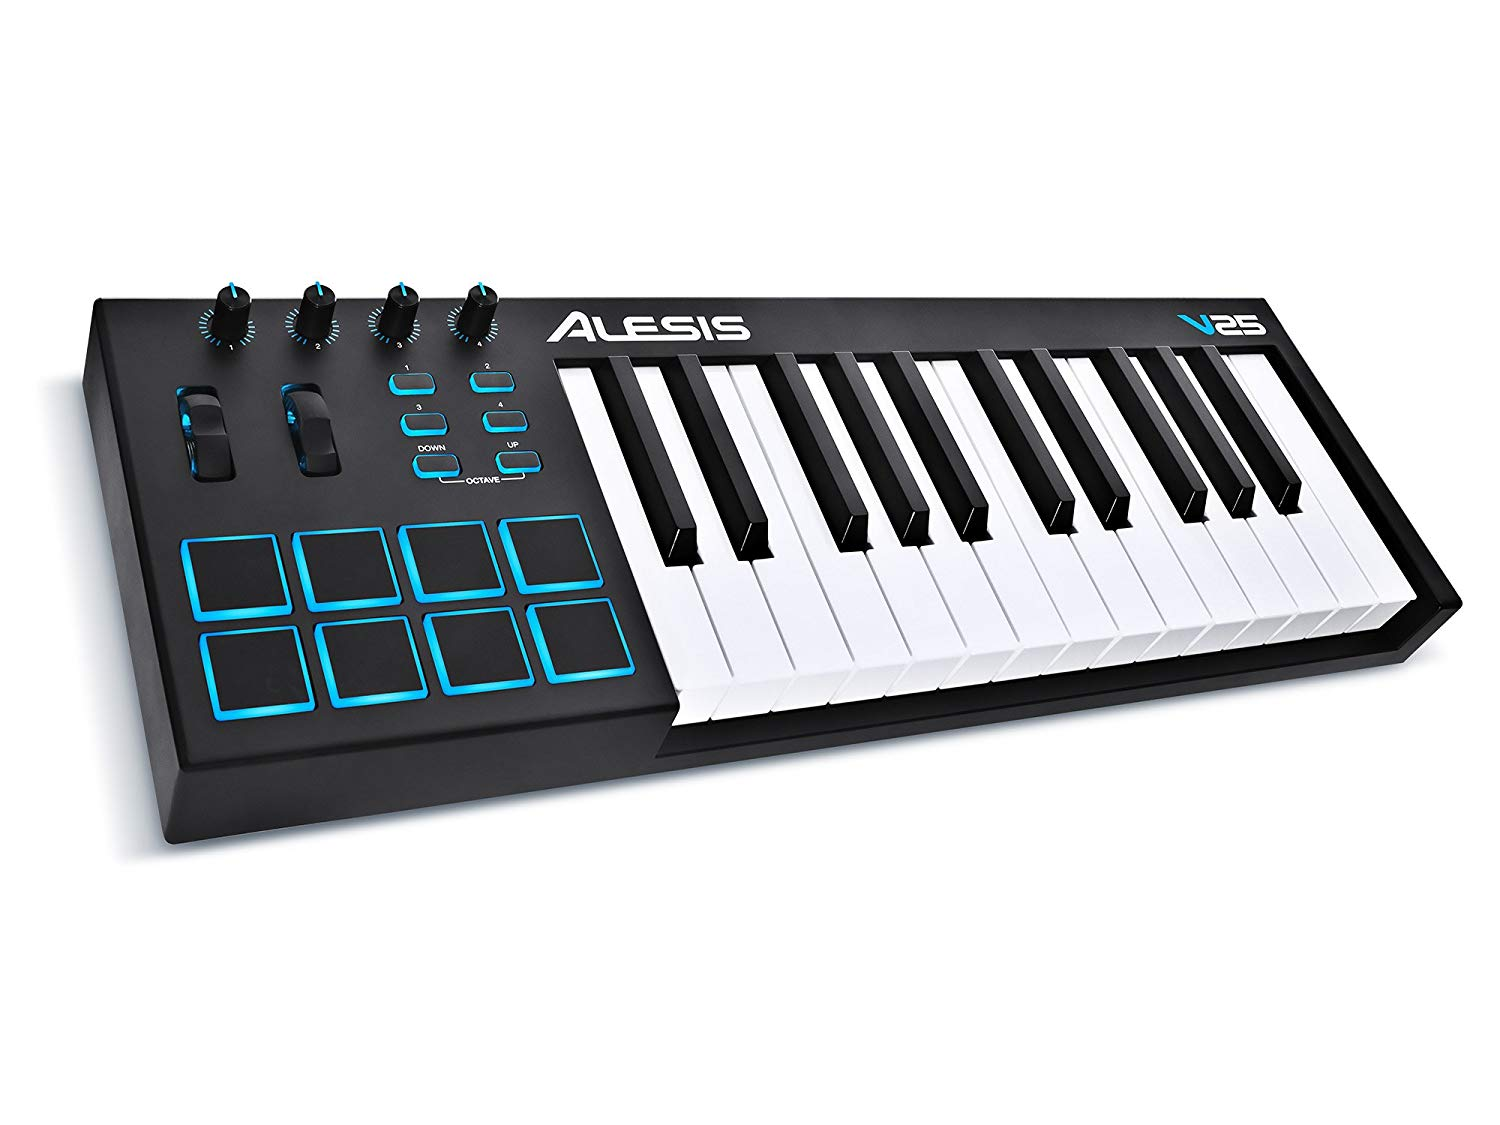 Alesis V25   25-Key USB MIDI Keyboard & Drum Pad Controller (8 Pads/4 Knobs/4 Buttons)